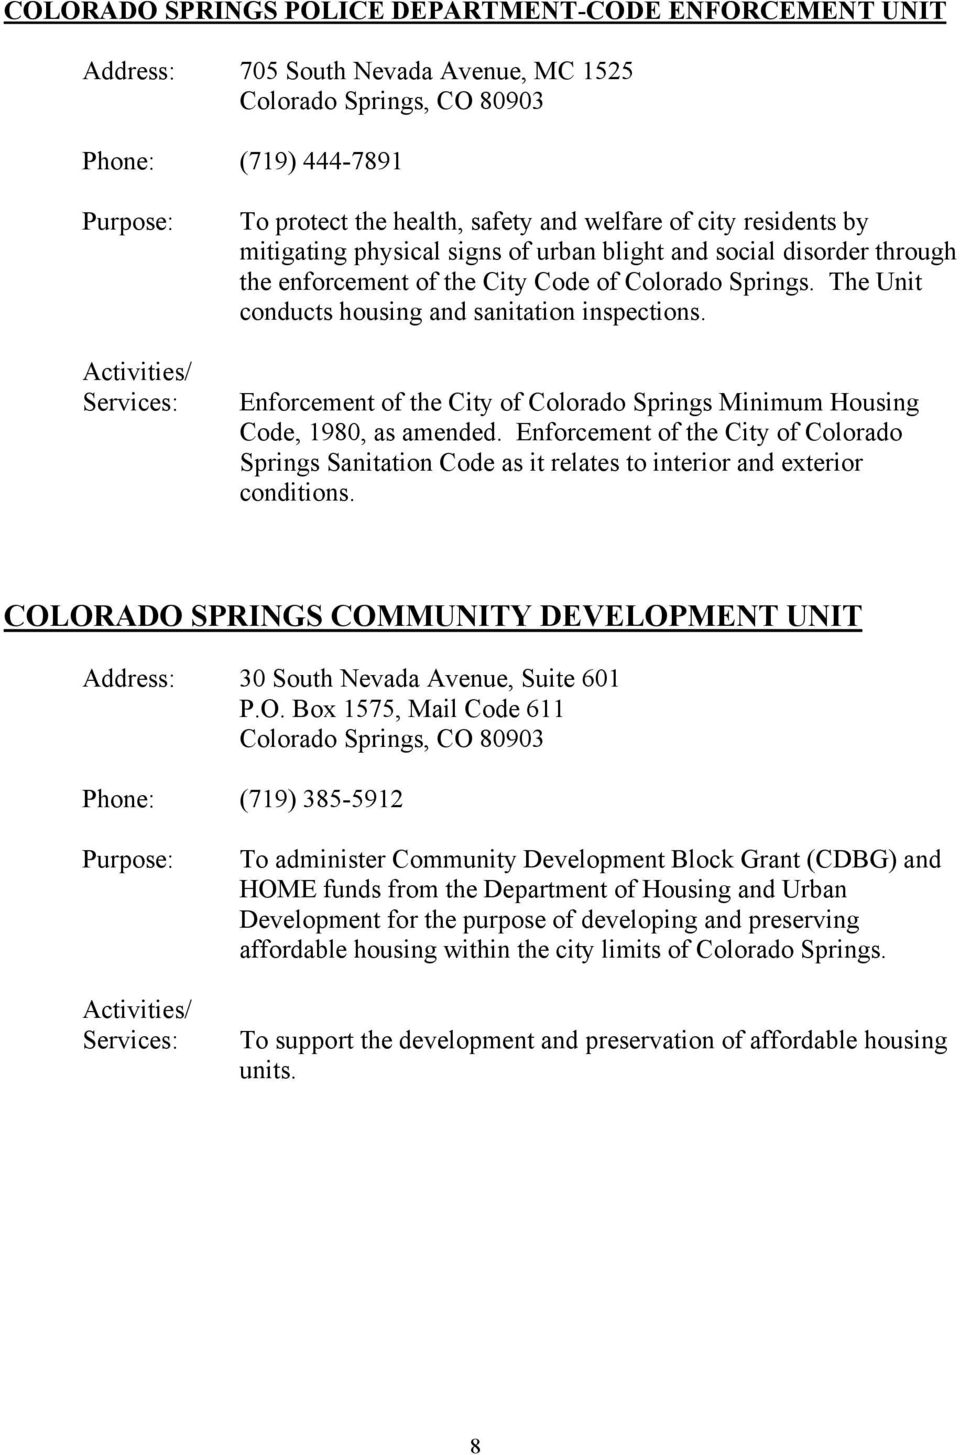 Enforcement of the City of Colorado Springs Minimum Housing Code, 1980, as amended. Enforcement of the City of Colorado Springs Sanitation Code as it relates to interior and exterior conditions.